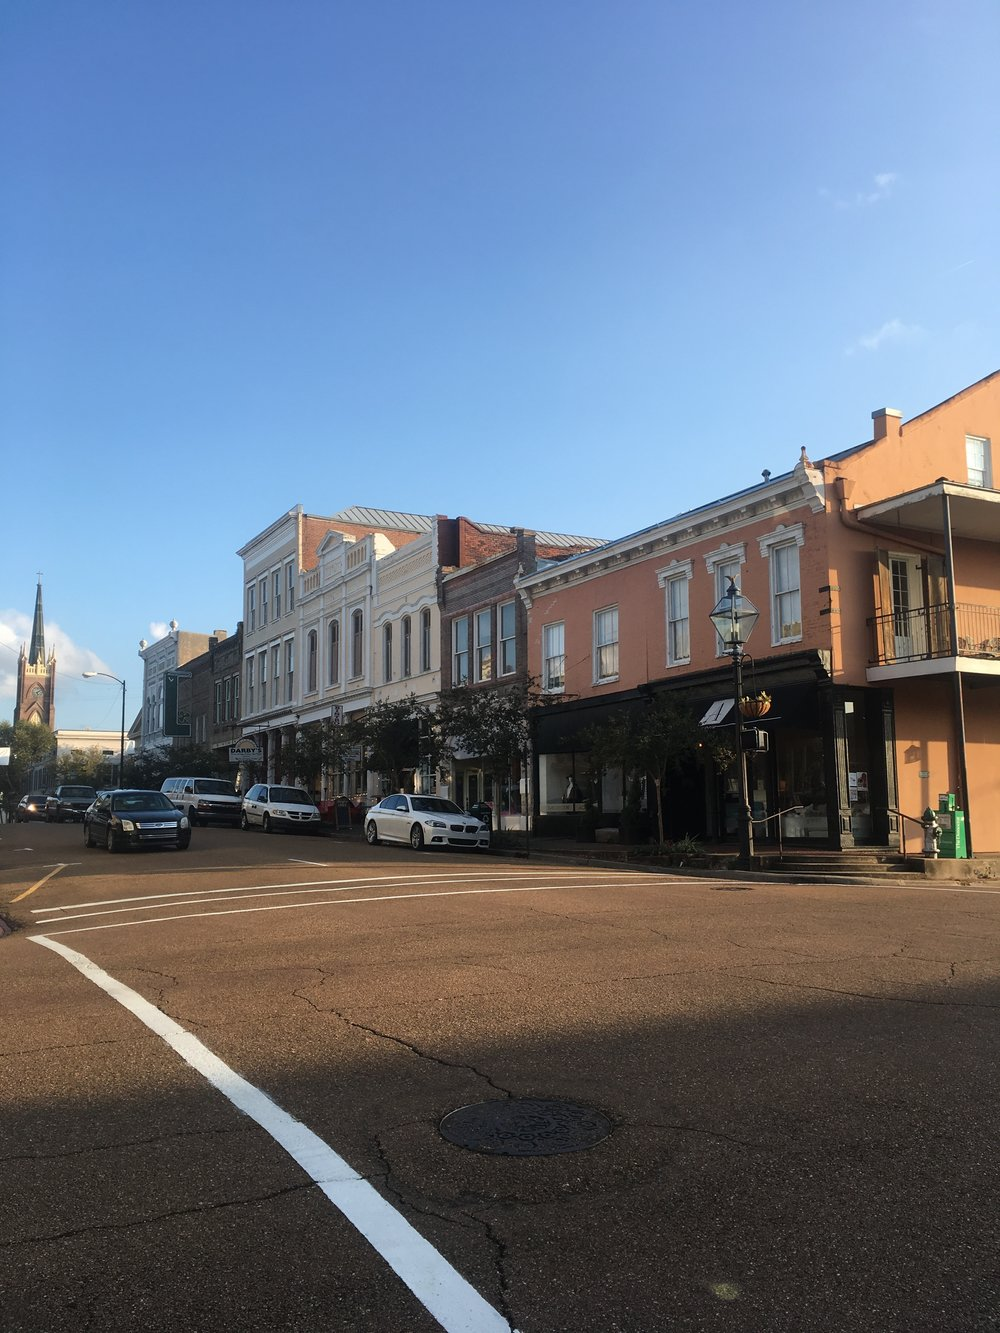 Downtown Natchez, Misssissippi